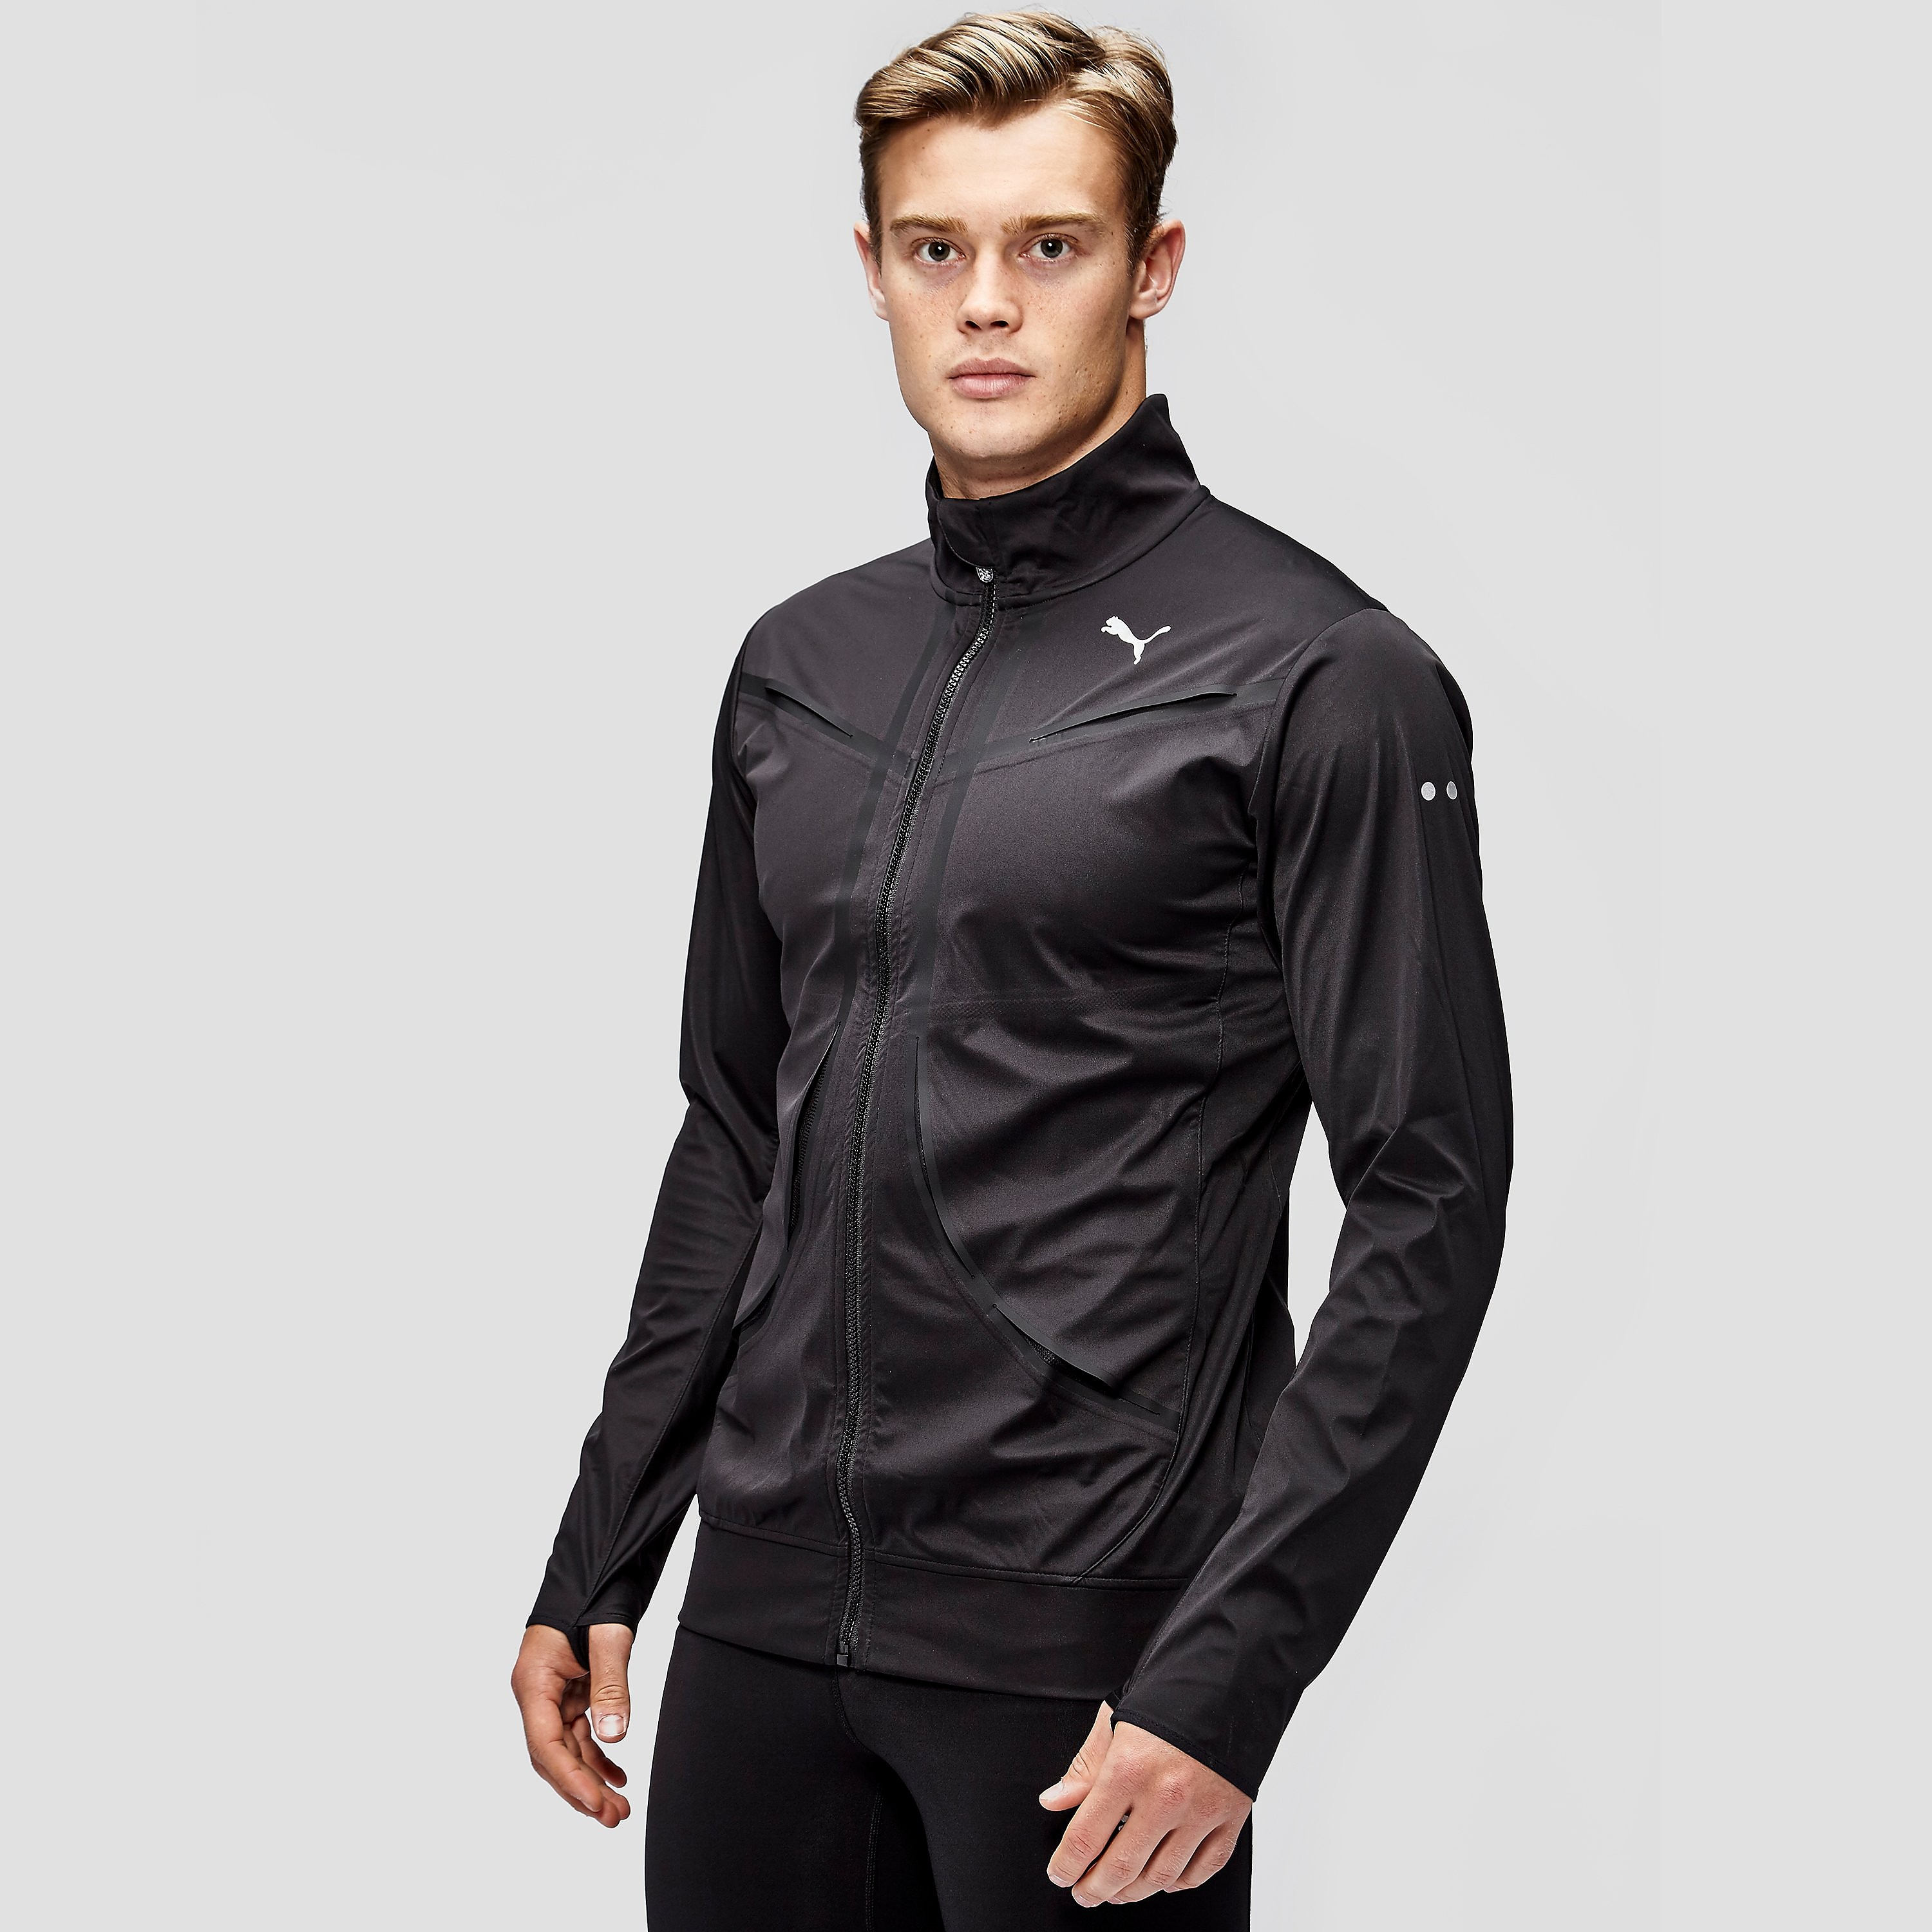 Puma Vent Thermo-R Men's Runner Jacket